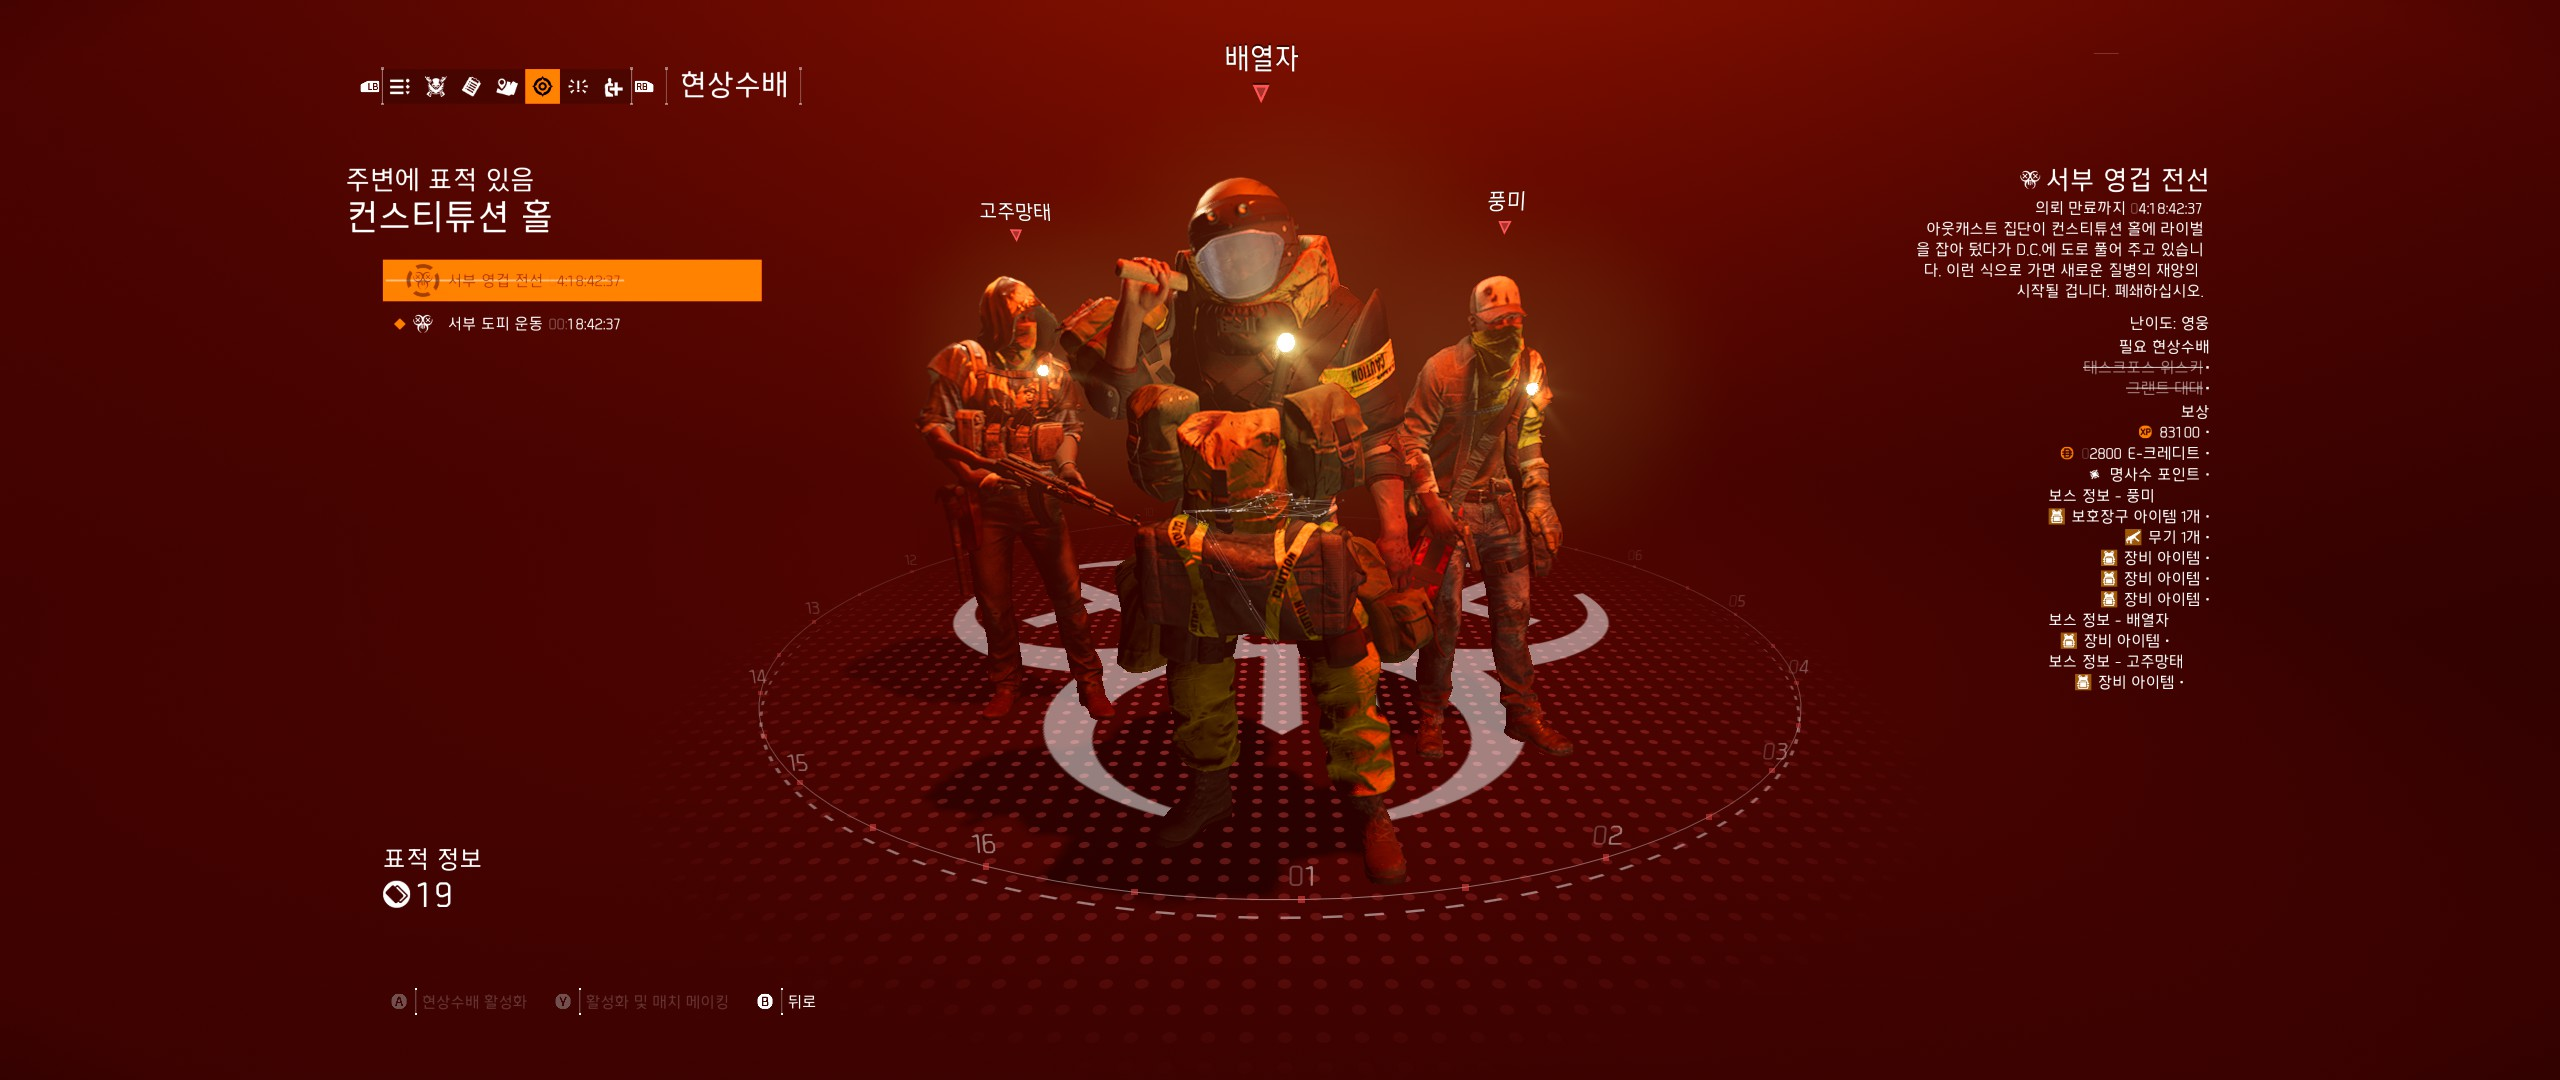 Tom Clancy's The Division® 22019-3-23-23-17-23.jpg